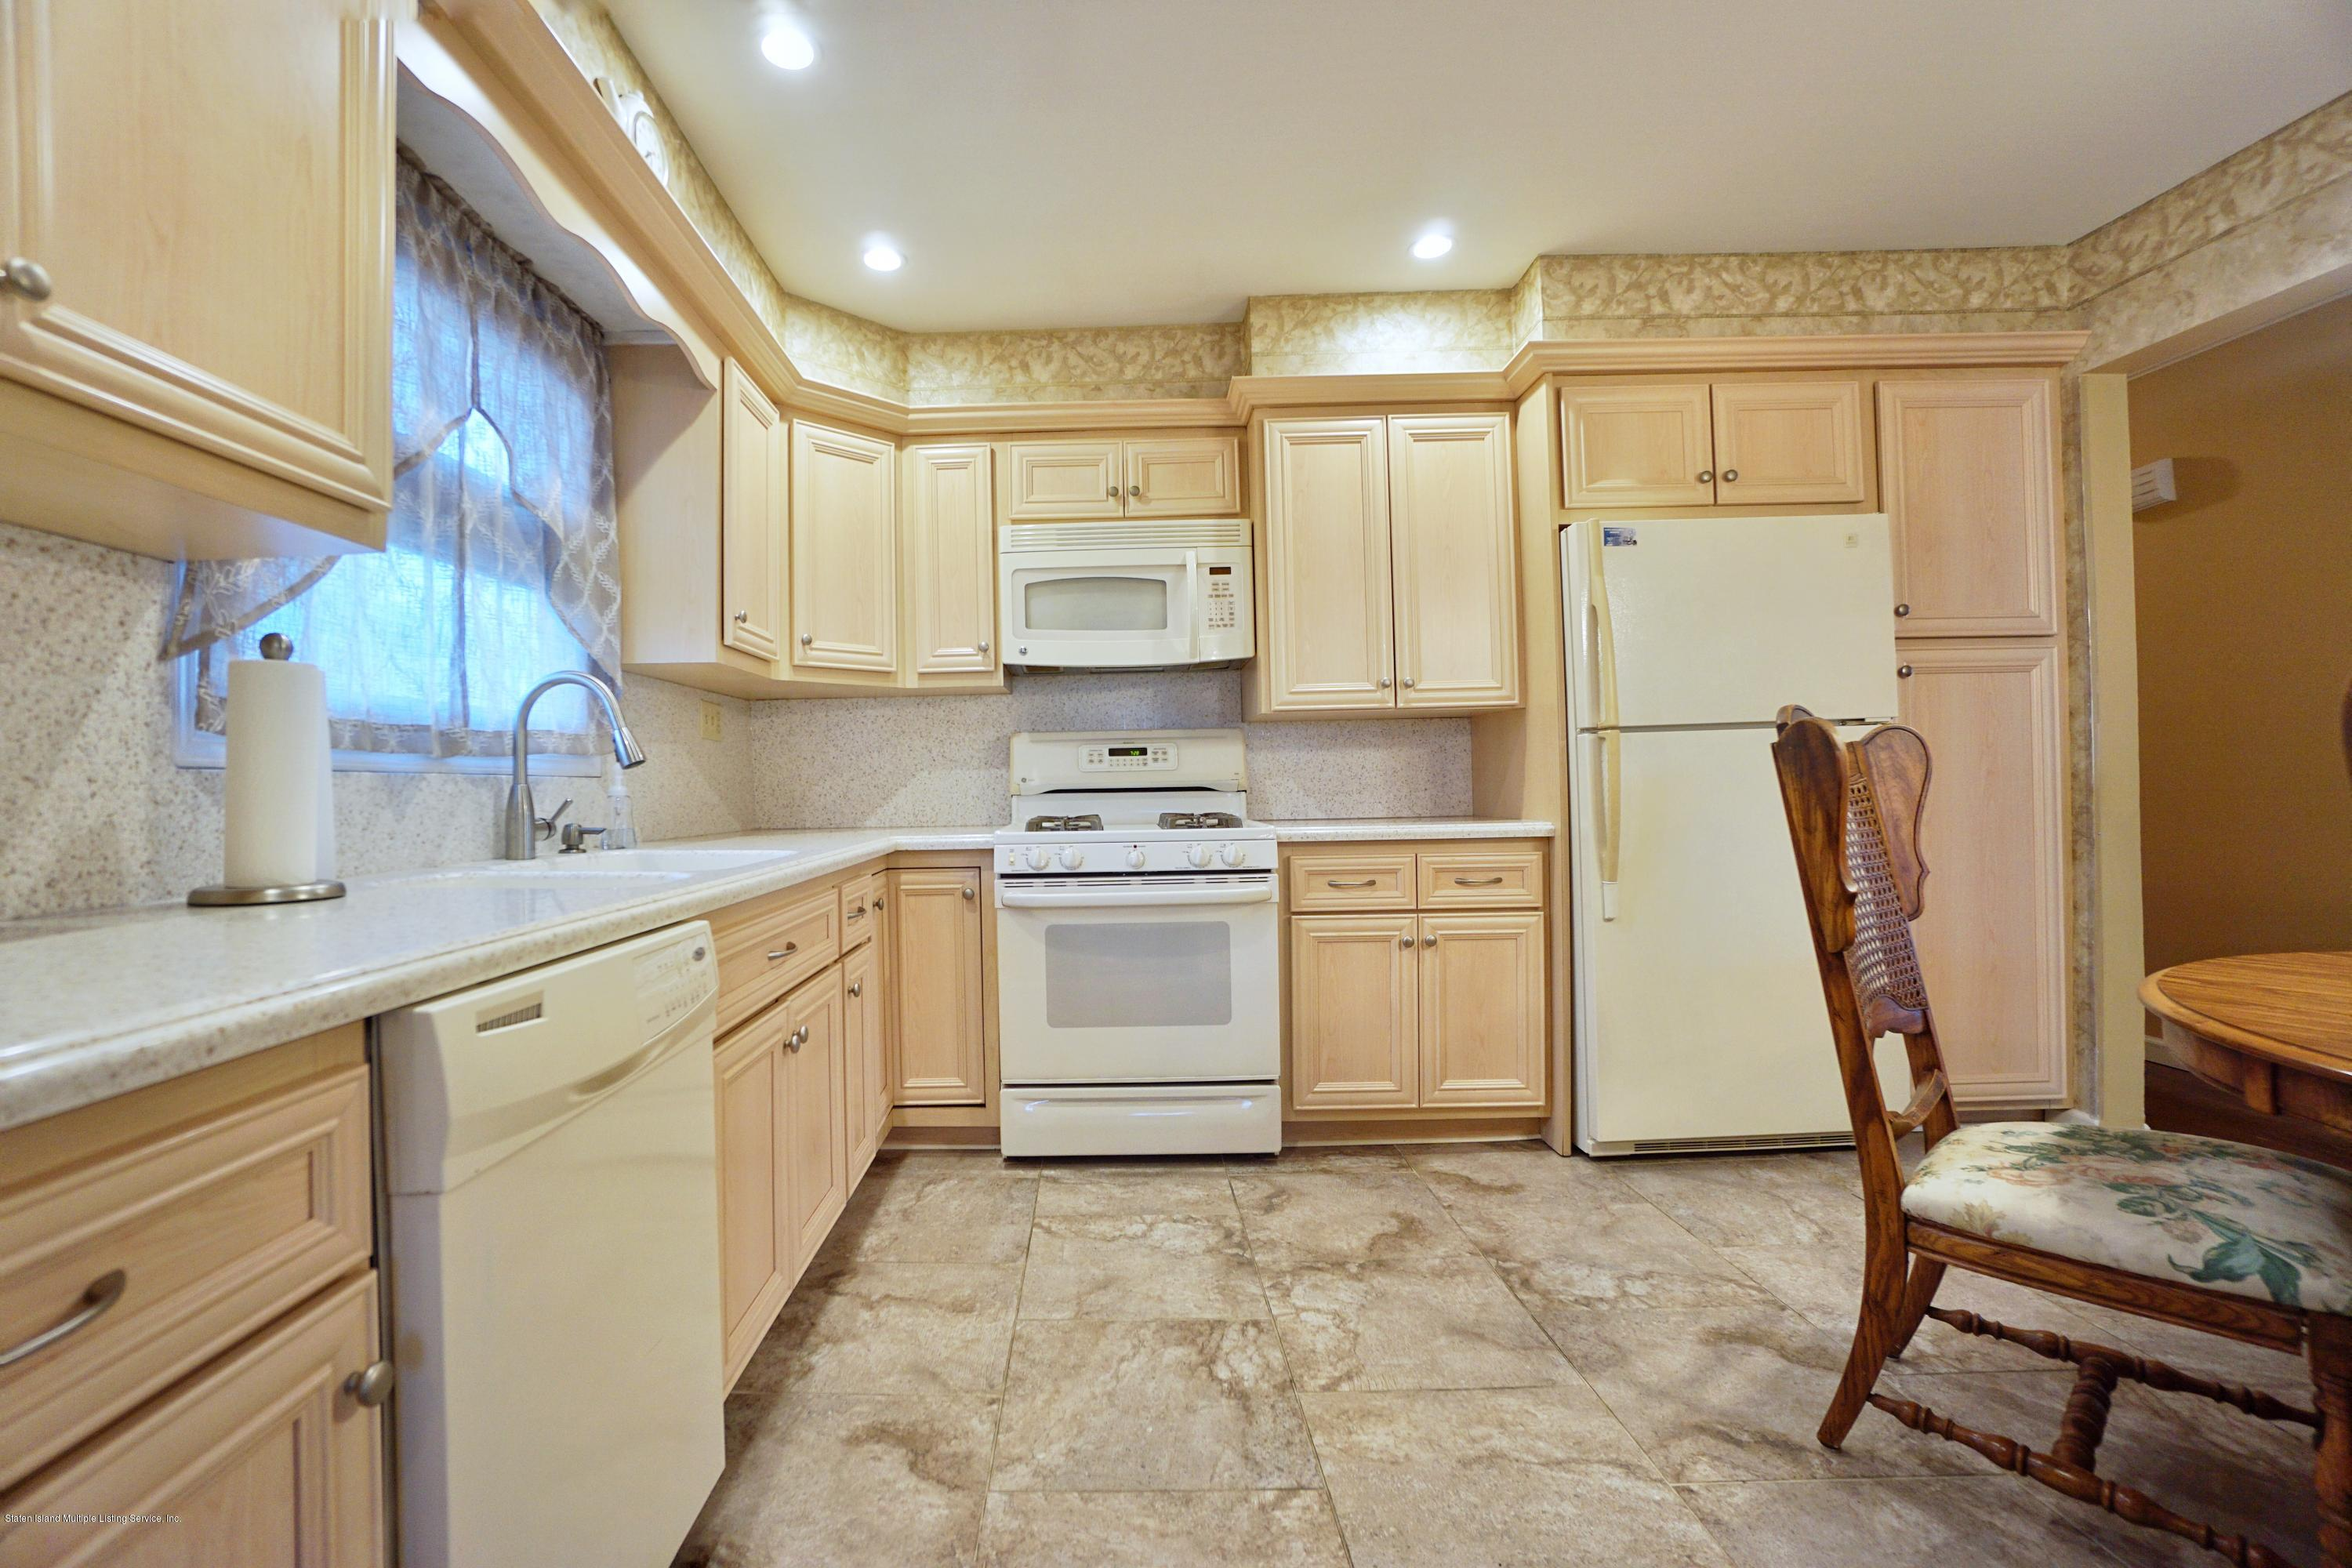 Single Family - Detached 77 Cedarview Avenue  Staten Island, NY 10306, MLS-1137631-12